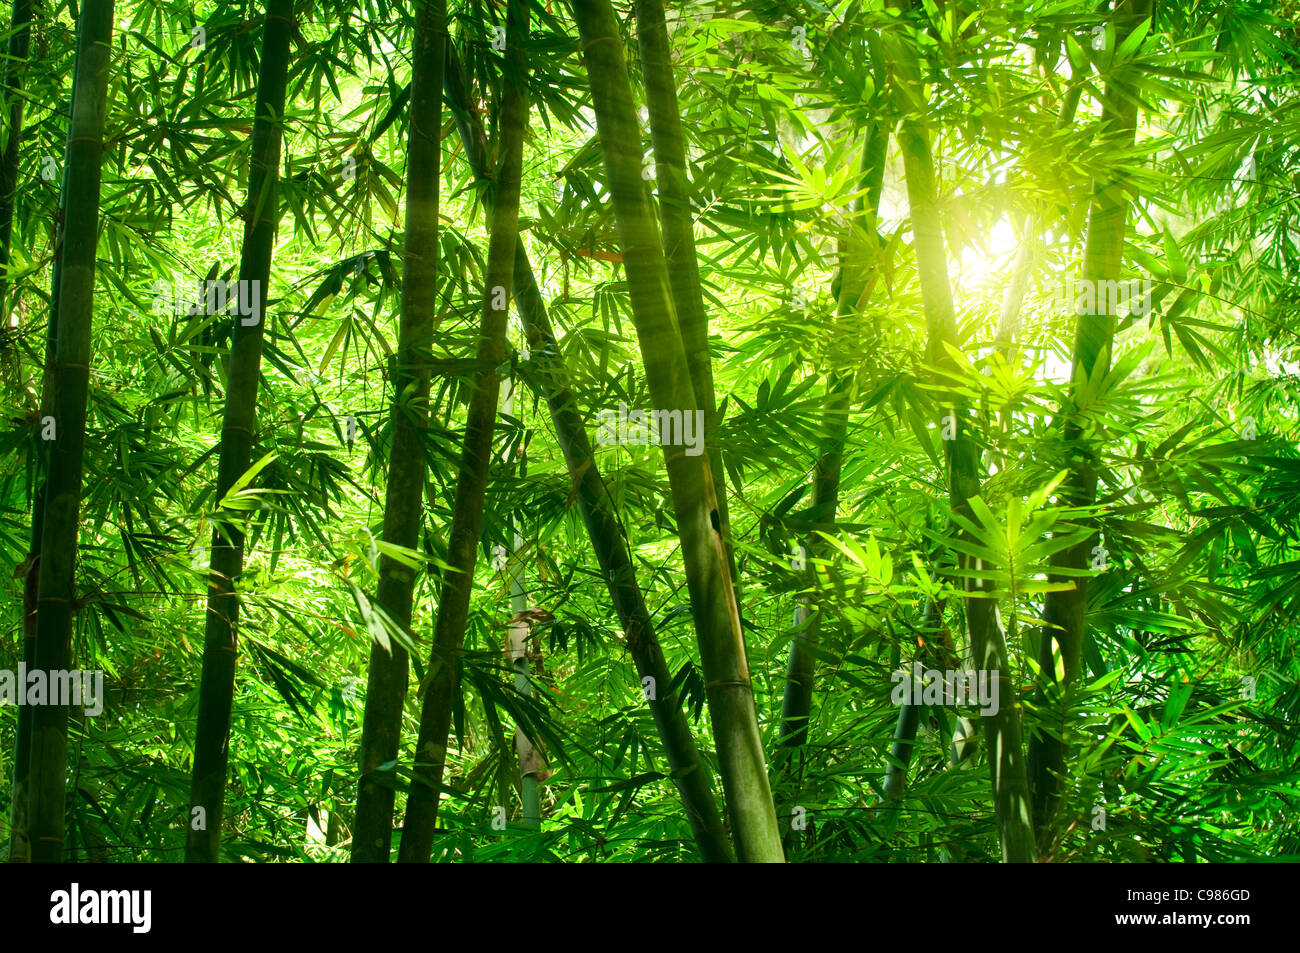 Asian Bamboo forest with morning sunlight. - Stock Image